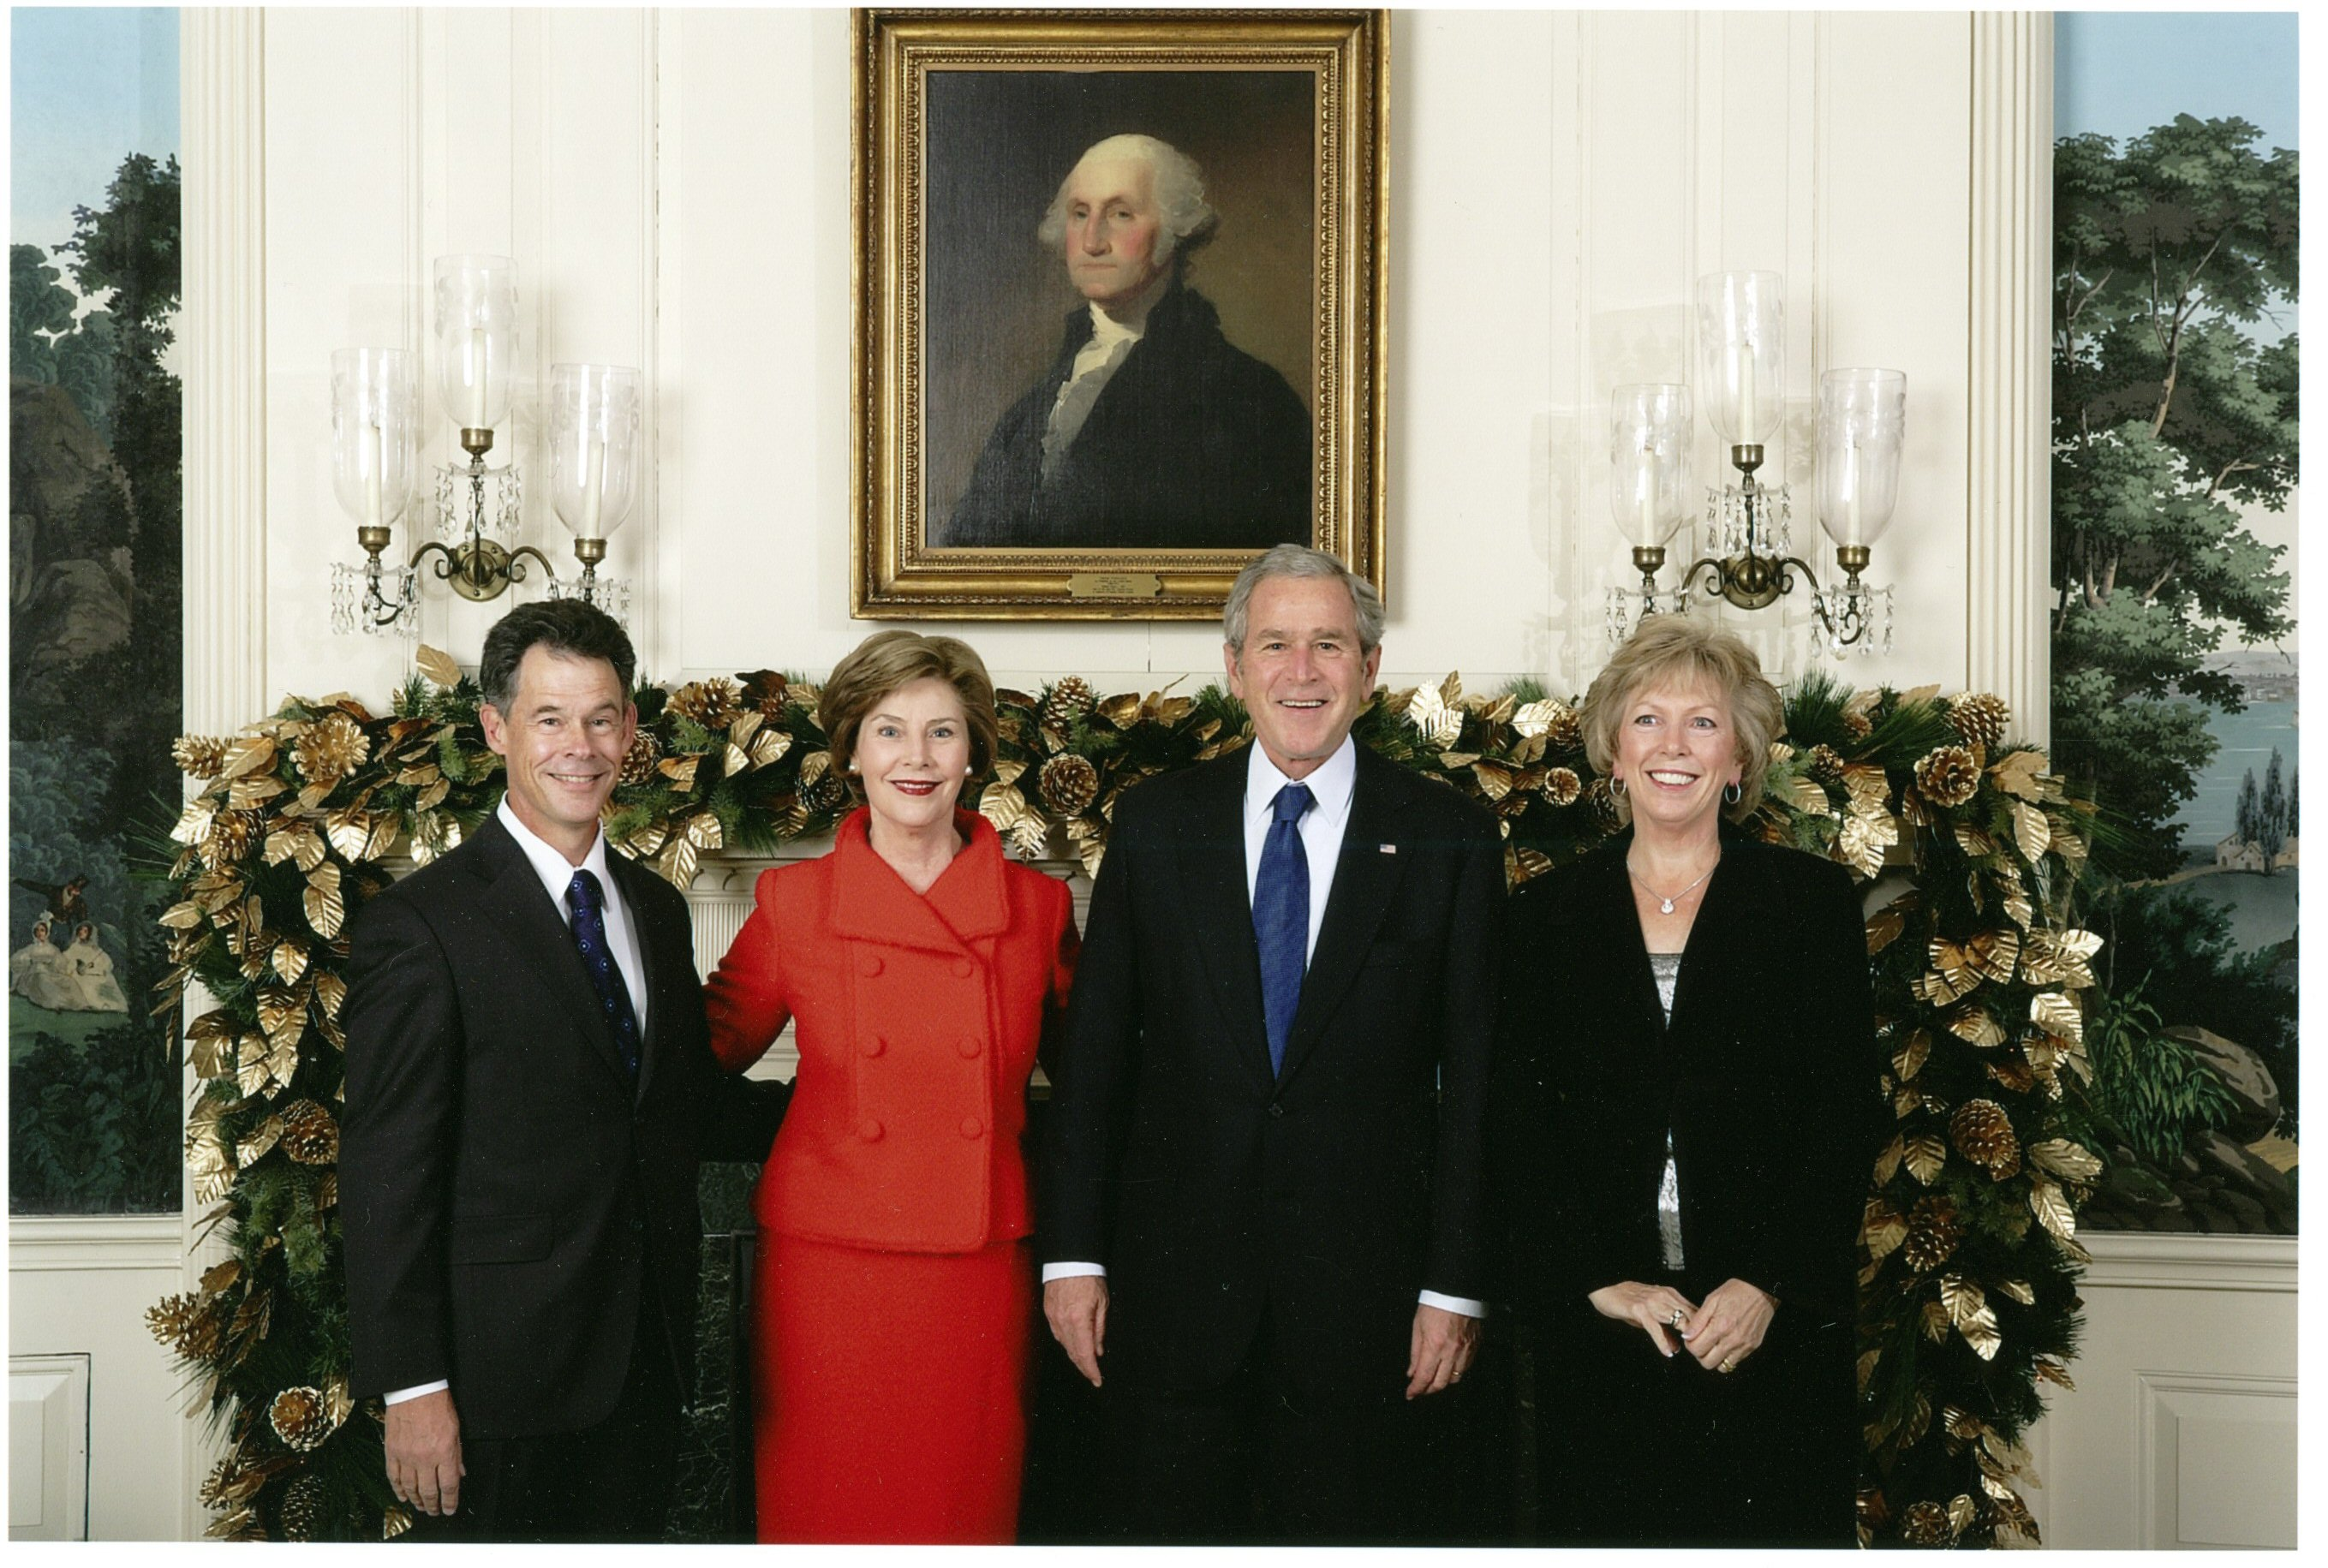 White House Christmas Card (2007) | Drummond Art